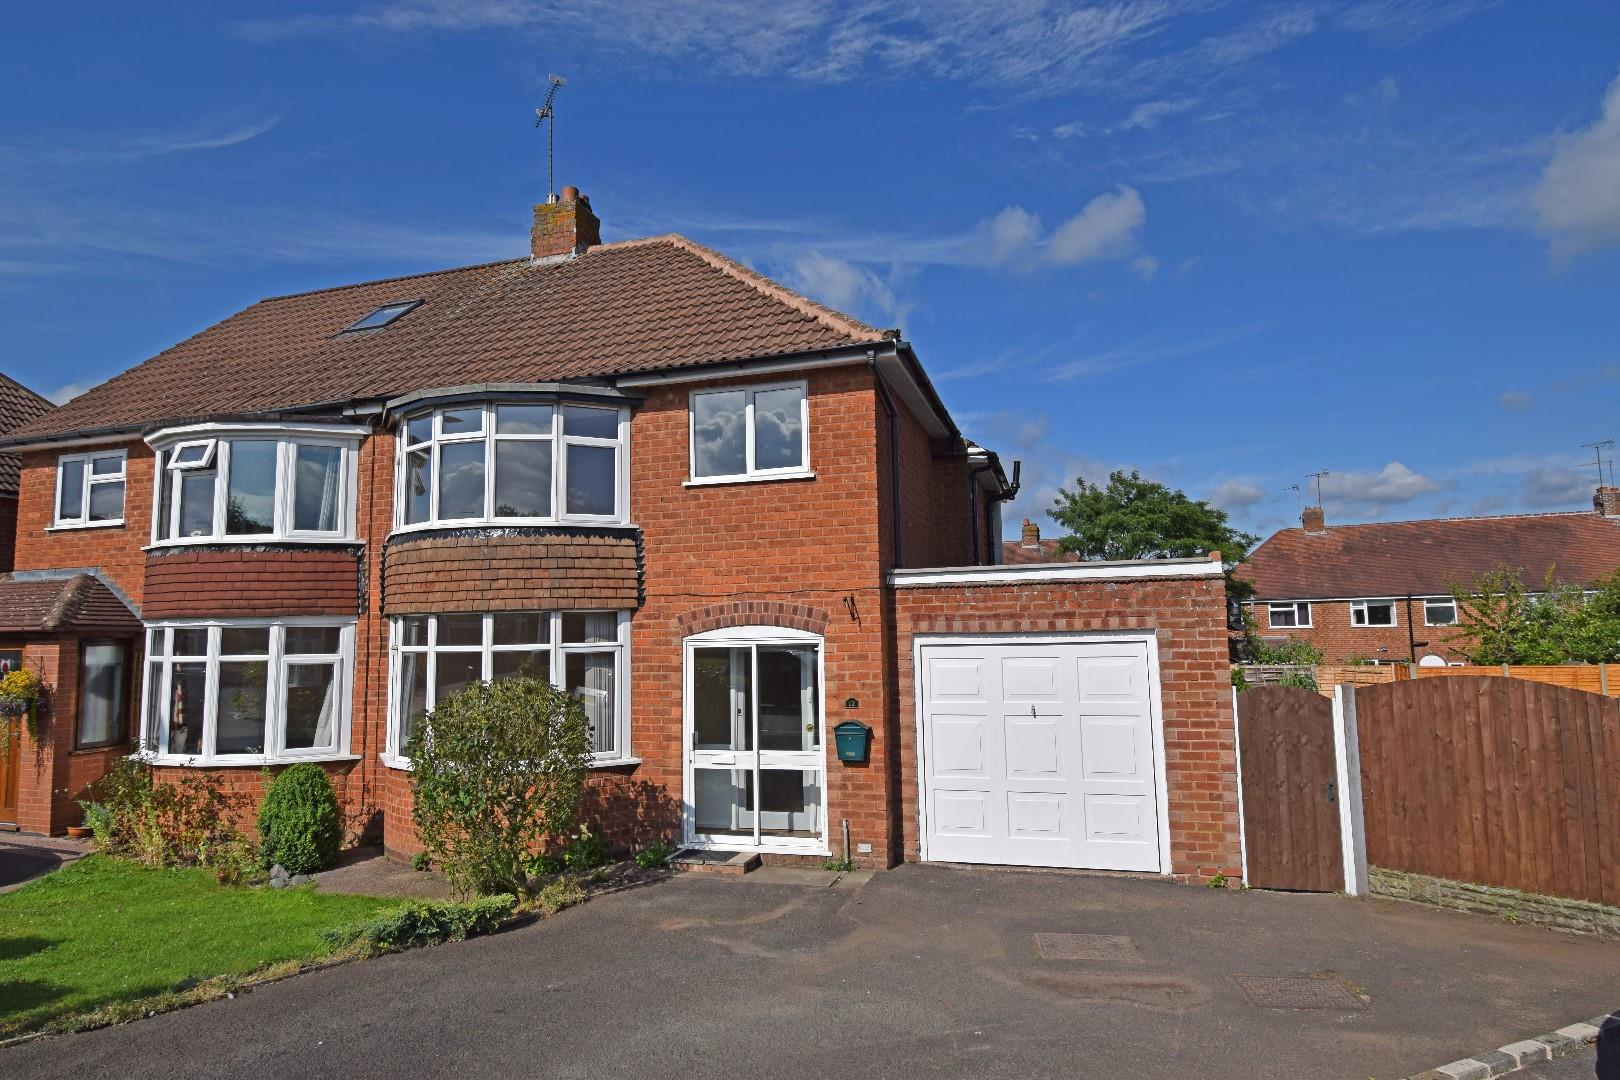 12 Rose Avenue, Alvechurch, Worcestershire, B48 7PG